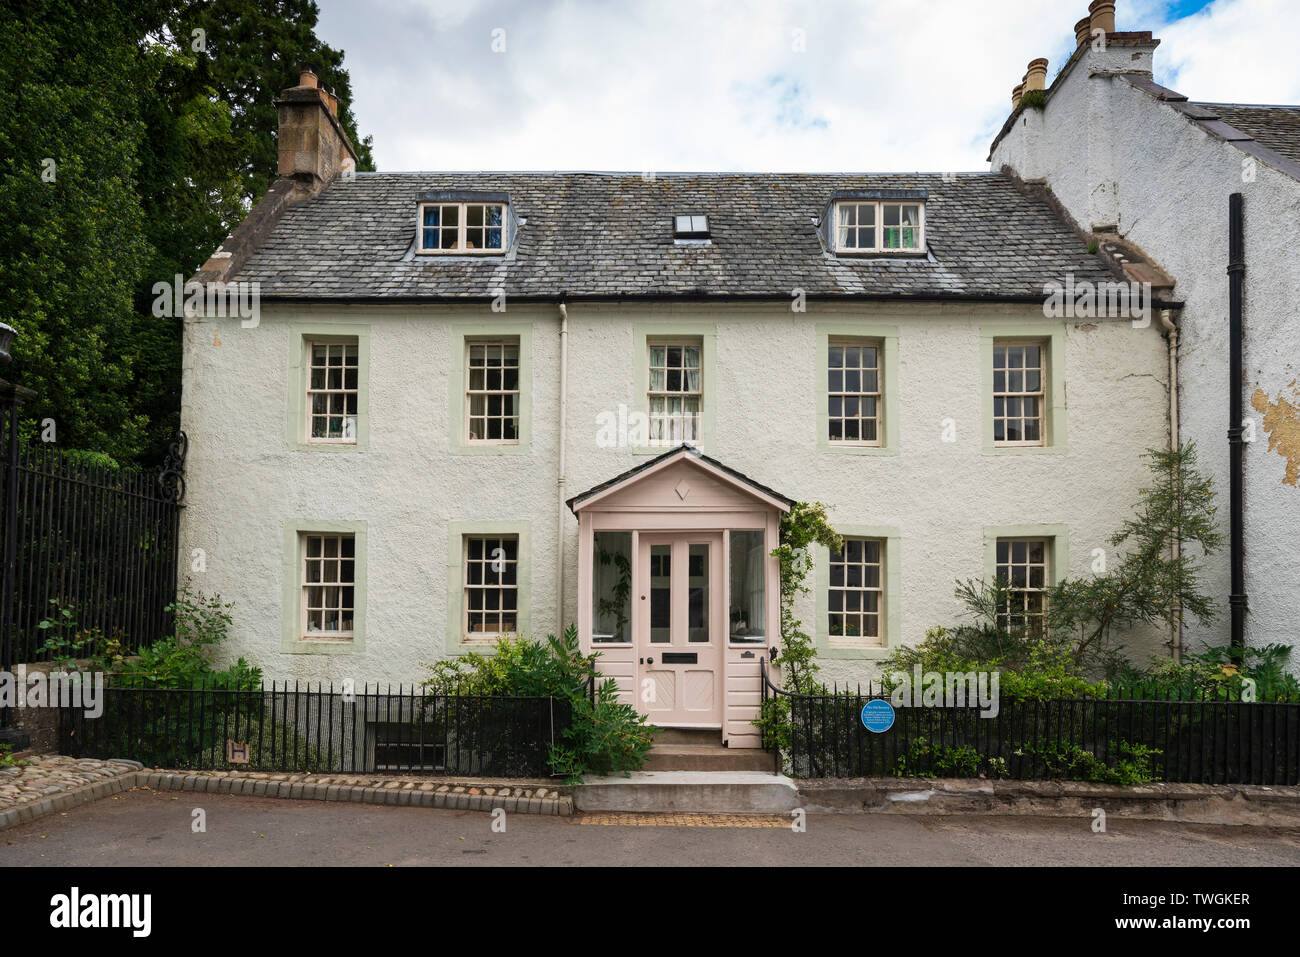 Old restored house in Dunkeld, Perthshire, Scotland, UK - Stock Image